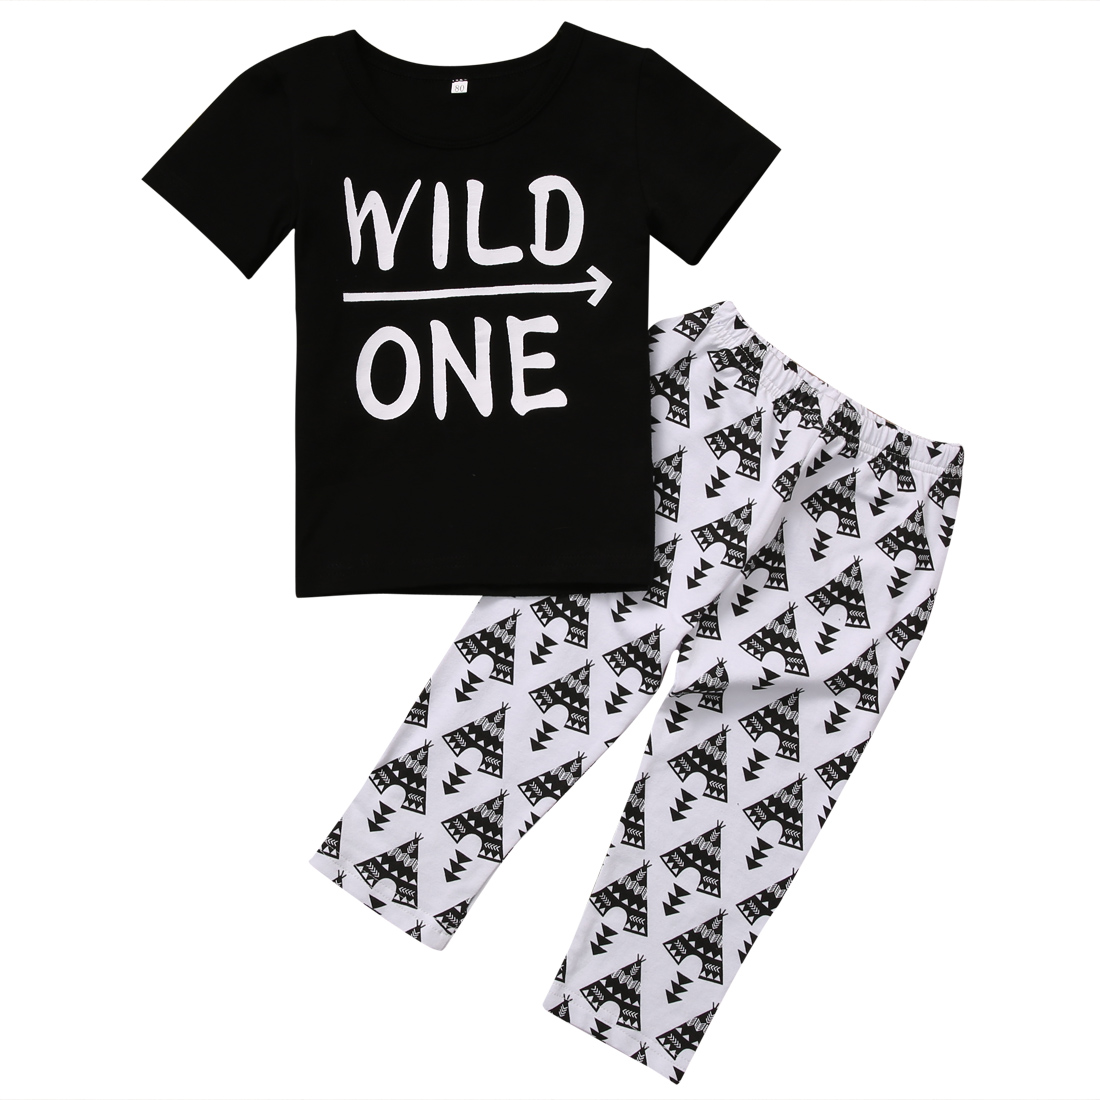 PUDCOCO 2PCS Set Newborn Baby Boy Clothes Casual T Shirt Tops+Long Pants Outfits WILD ONE Print Black Cotton 0-24M organic airplane newborn baby boy girl clothes set tops t shirt pants long sleeve cotton blue 2pcs outfits baby boys set